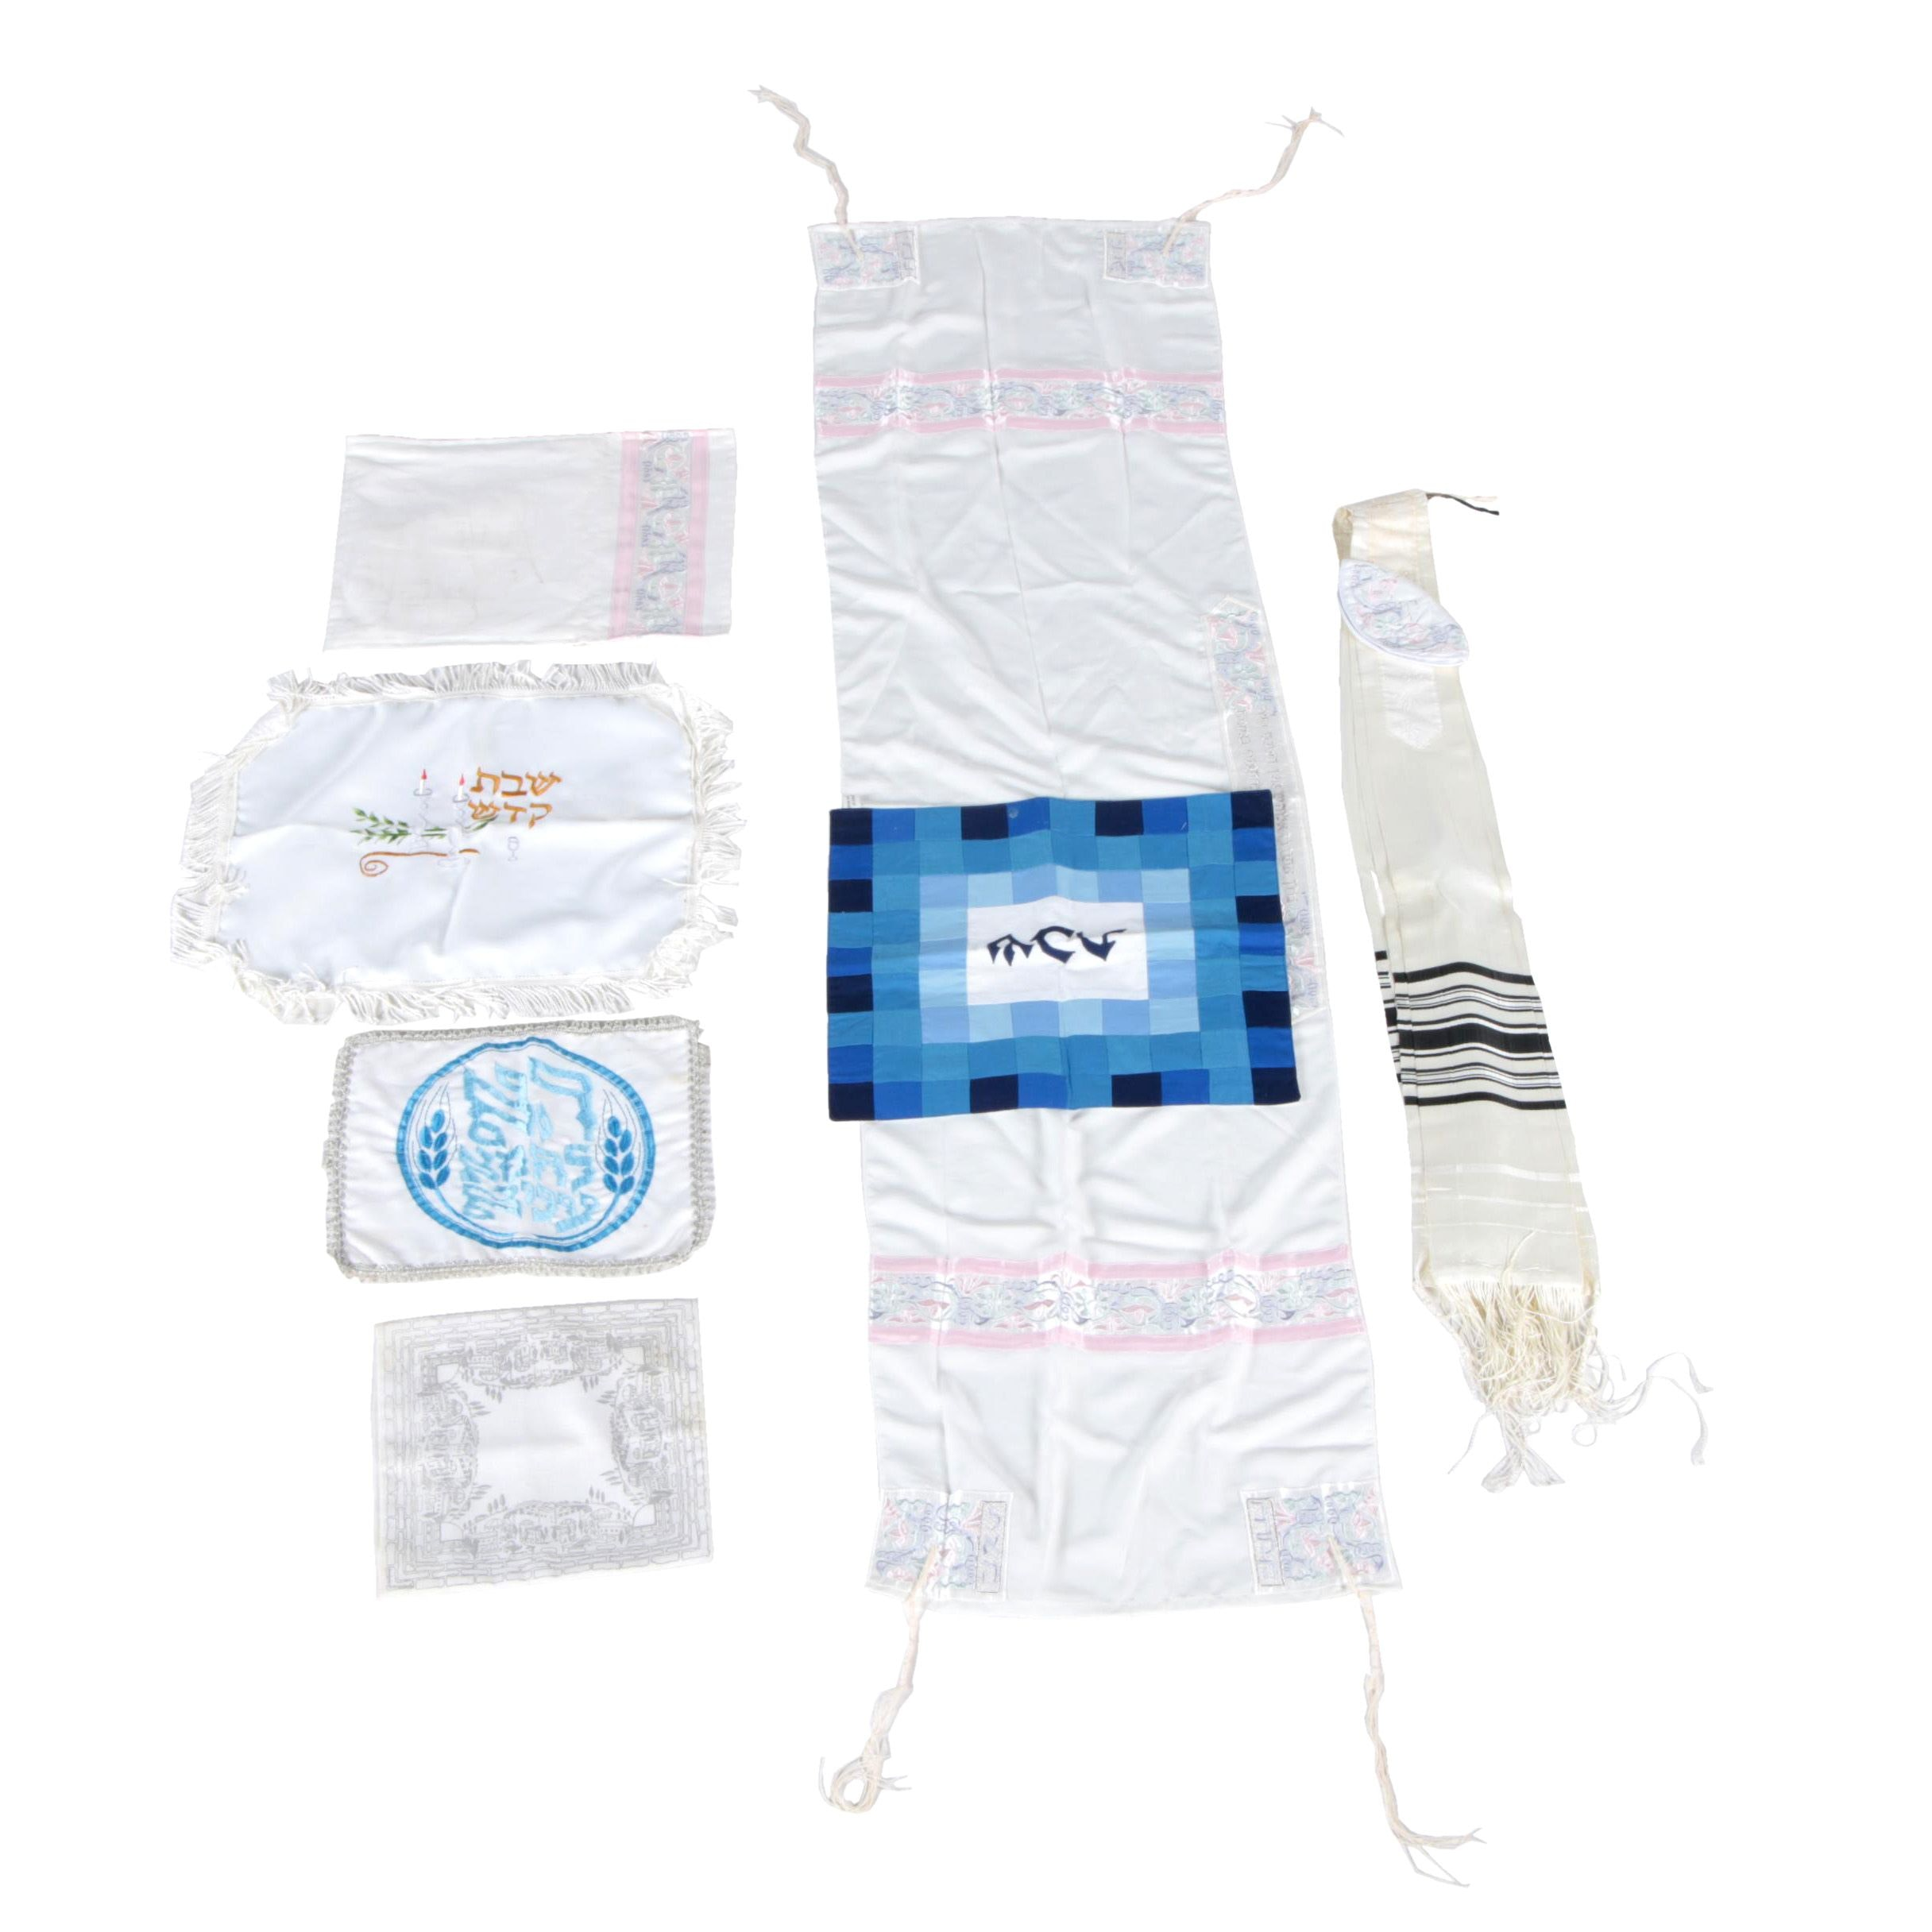 Judaica Covers and Clothing